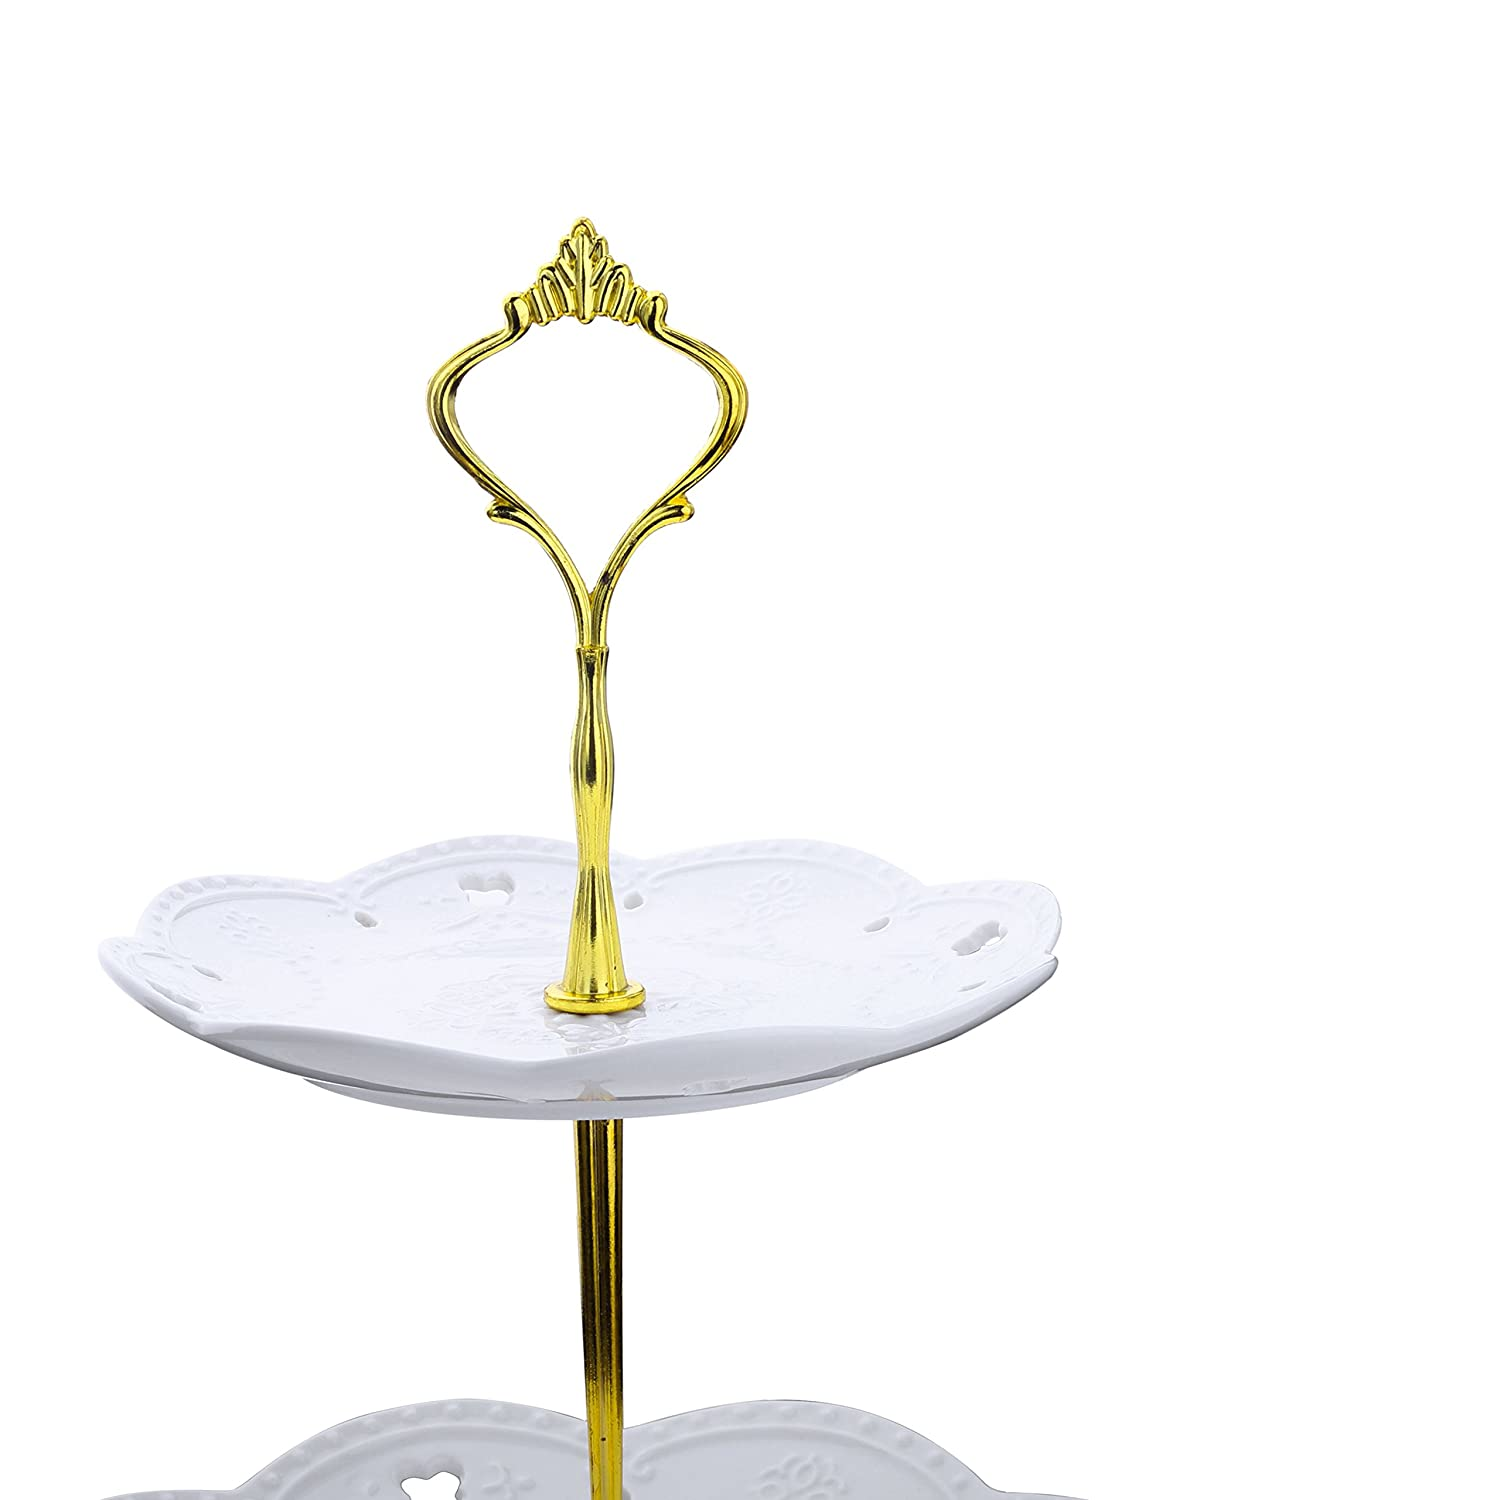 Tapas or Cheese Cakes Malacasa 3 Tier Natural Slate Cake Stand 10 Inch Square Tea Party Server Serving Set for Cupcakes Cookies